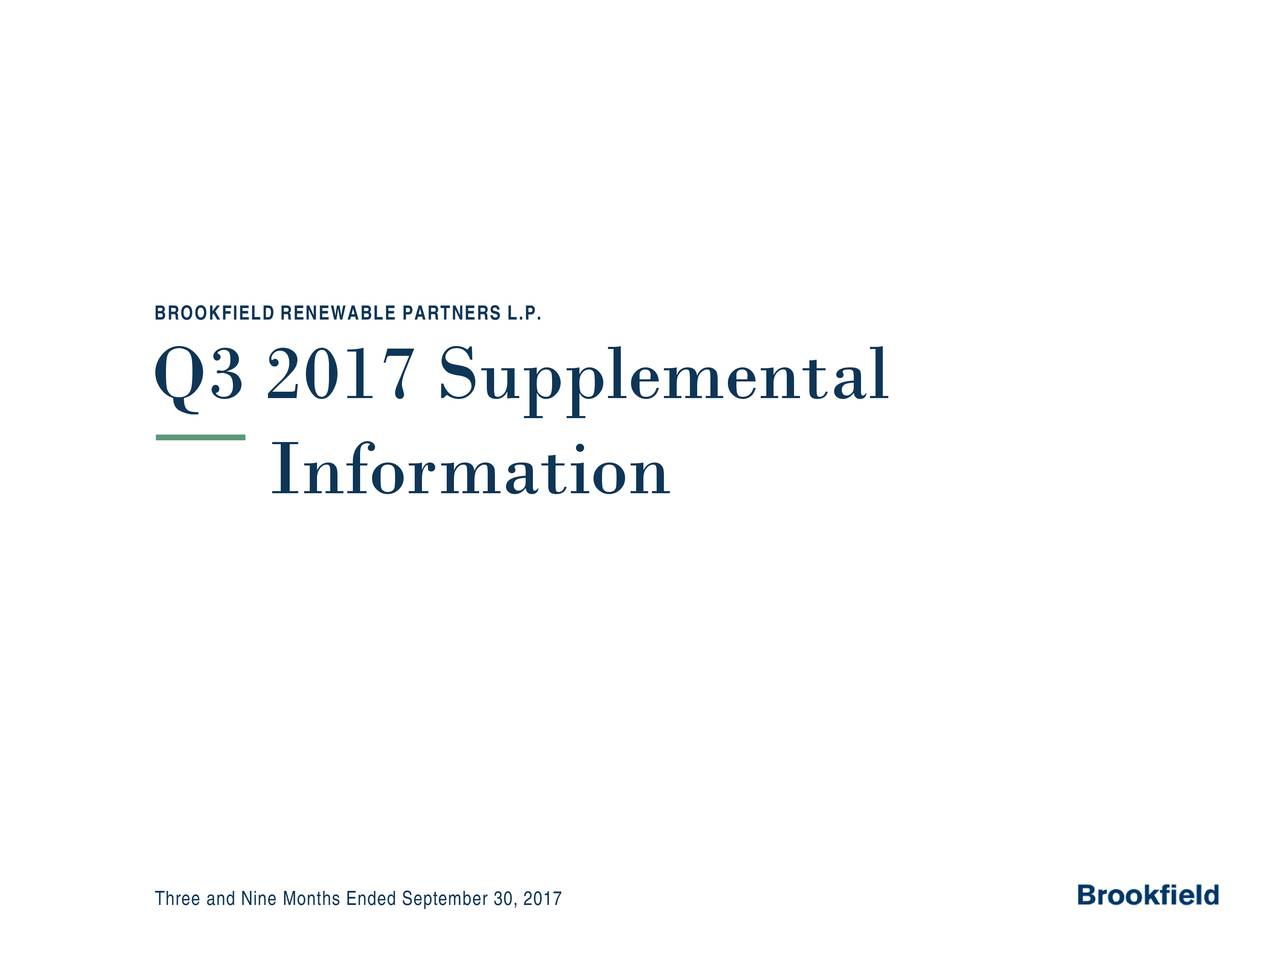 Q3 2017 Supplemental Information Three and Nine Months Ended September 30, 2017